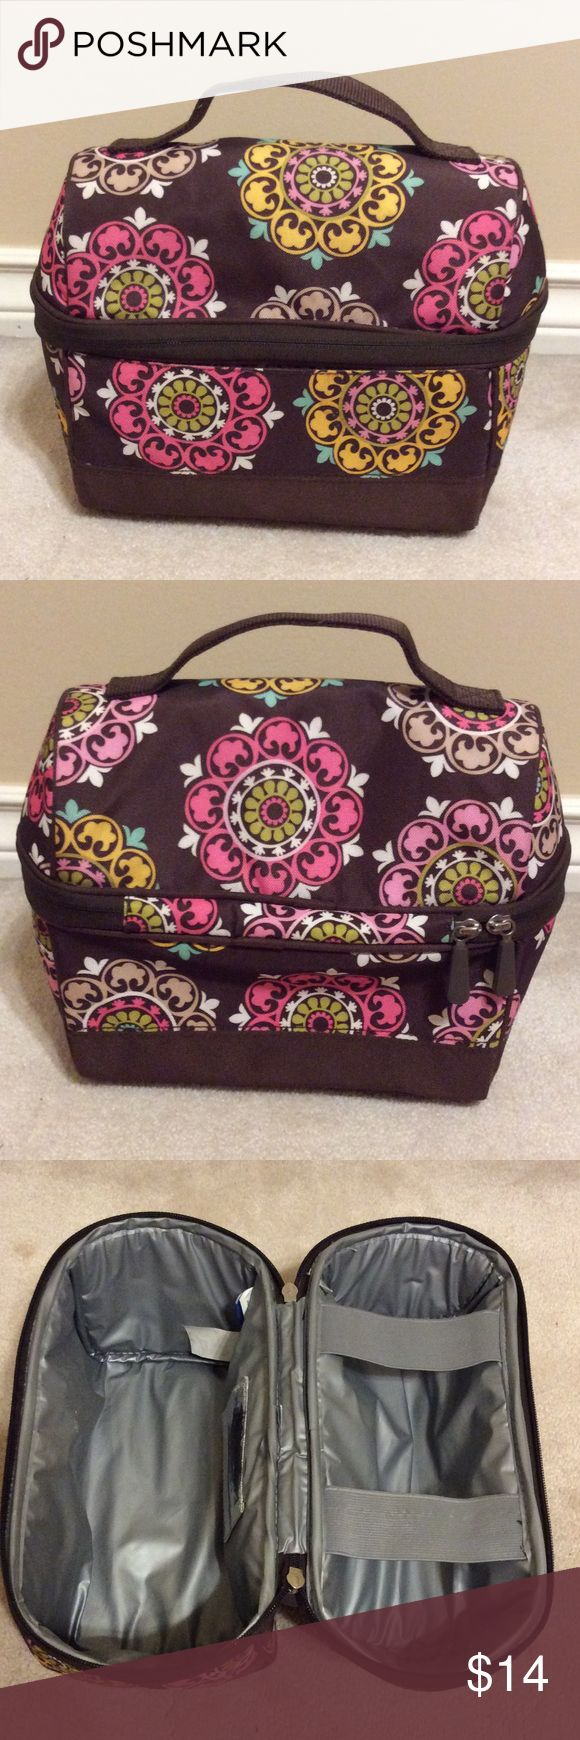 """🍎 Pottery Barn Teen Insulated Lunchbox 🍴 Barely used, nice lunchbox is perfect for school or work!  Has upper area for thermos or drink bottle & it's a great long shape.  Measures 10"""" x 5 1/2"""" x 9"""".  Bundle for a discount! PB Teen Accessories Bags"""